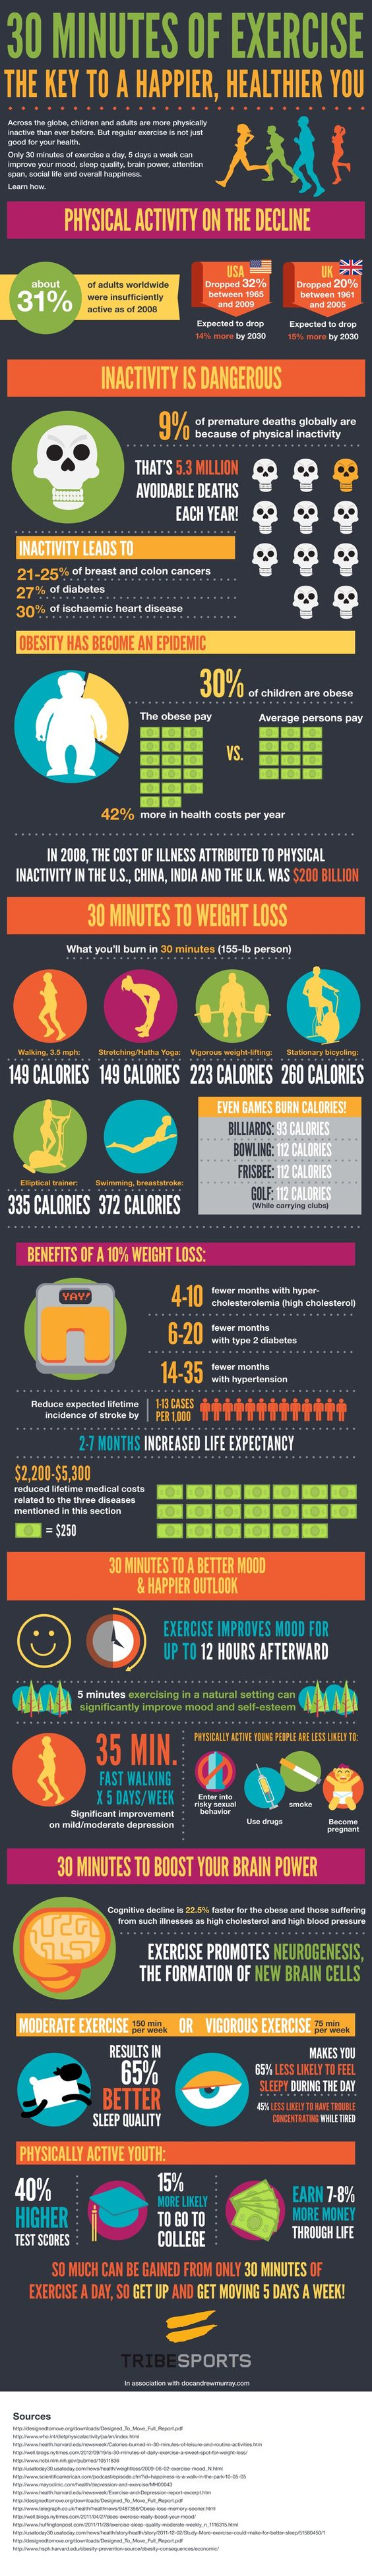 30 minutes of exercise can do so much...: